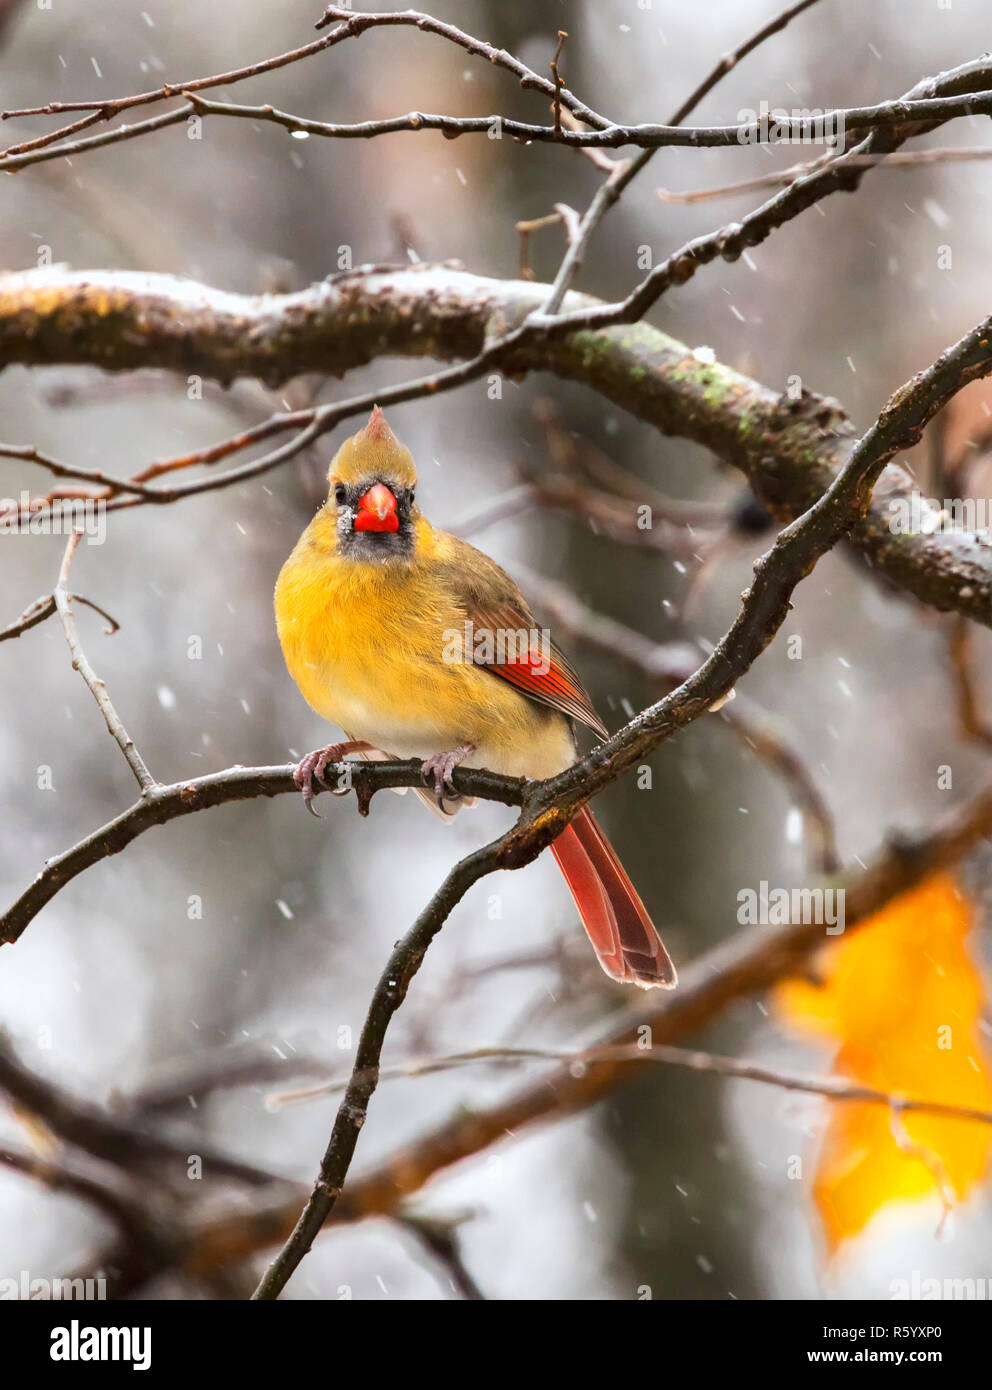 Female Northern Cardinal perched on the tree branch during blizzard at Jester Park, Iowa, USA Stock Photo